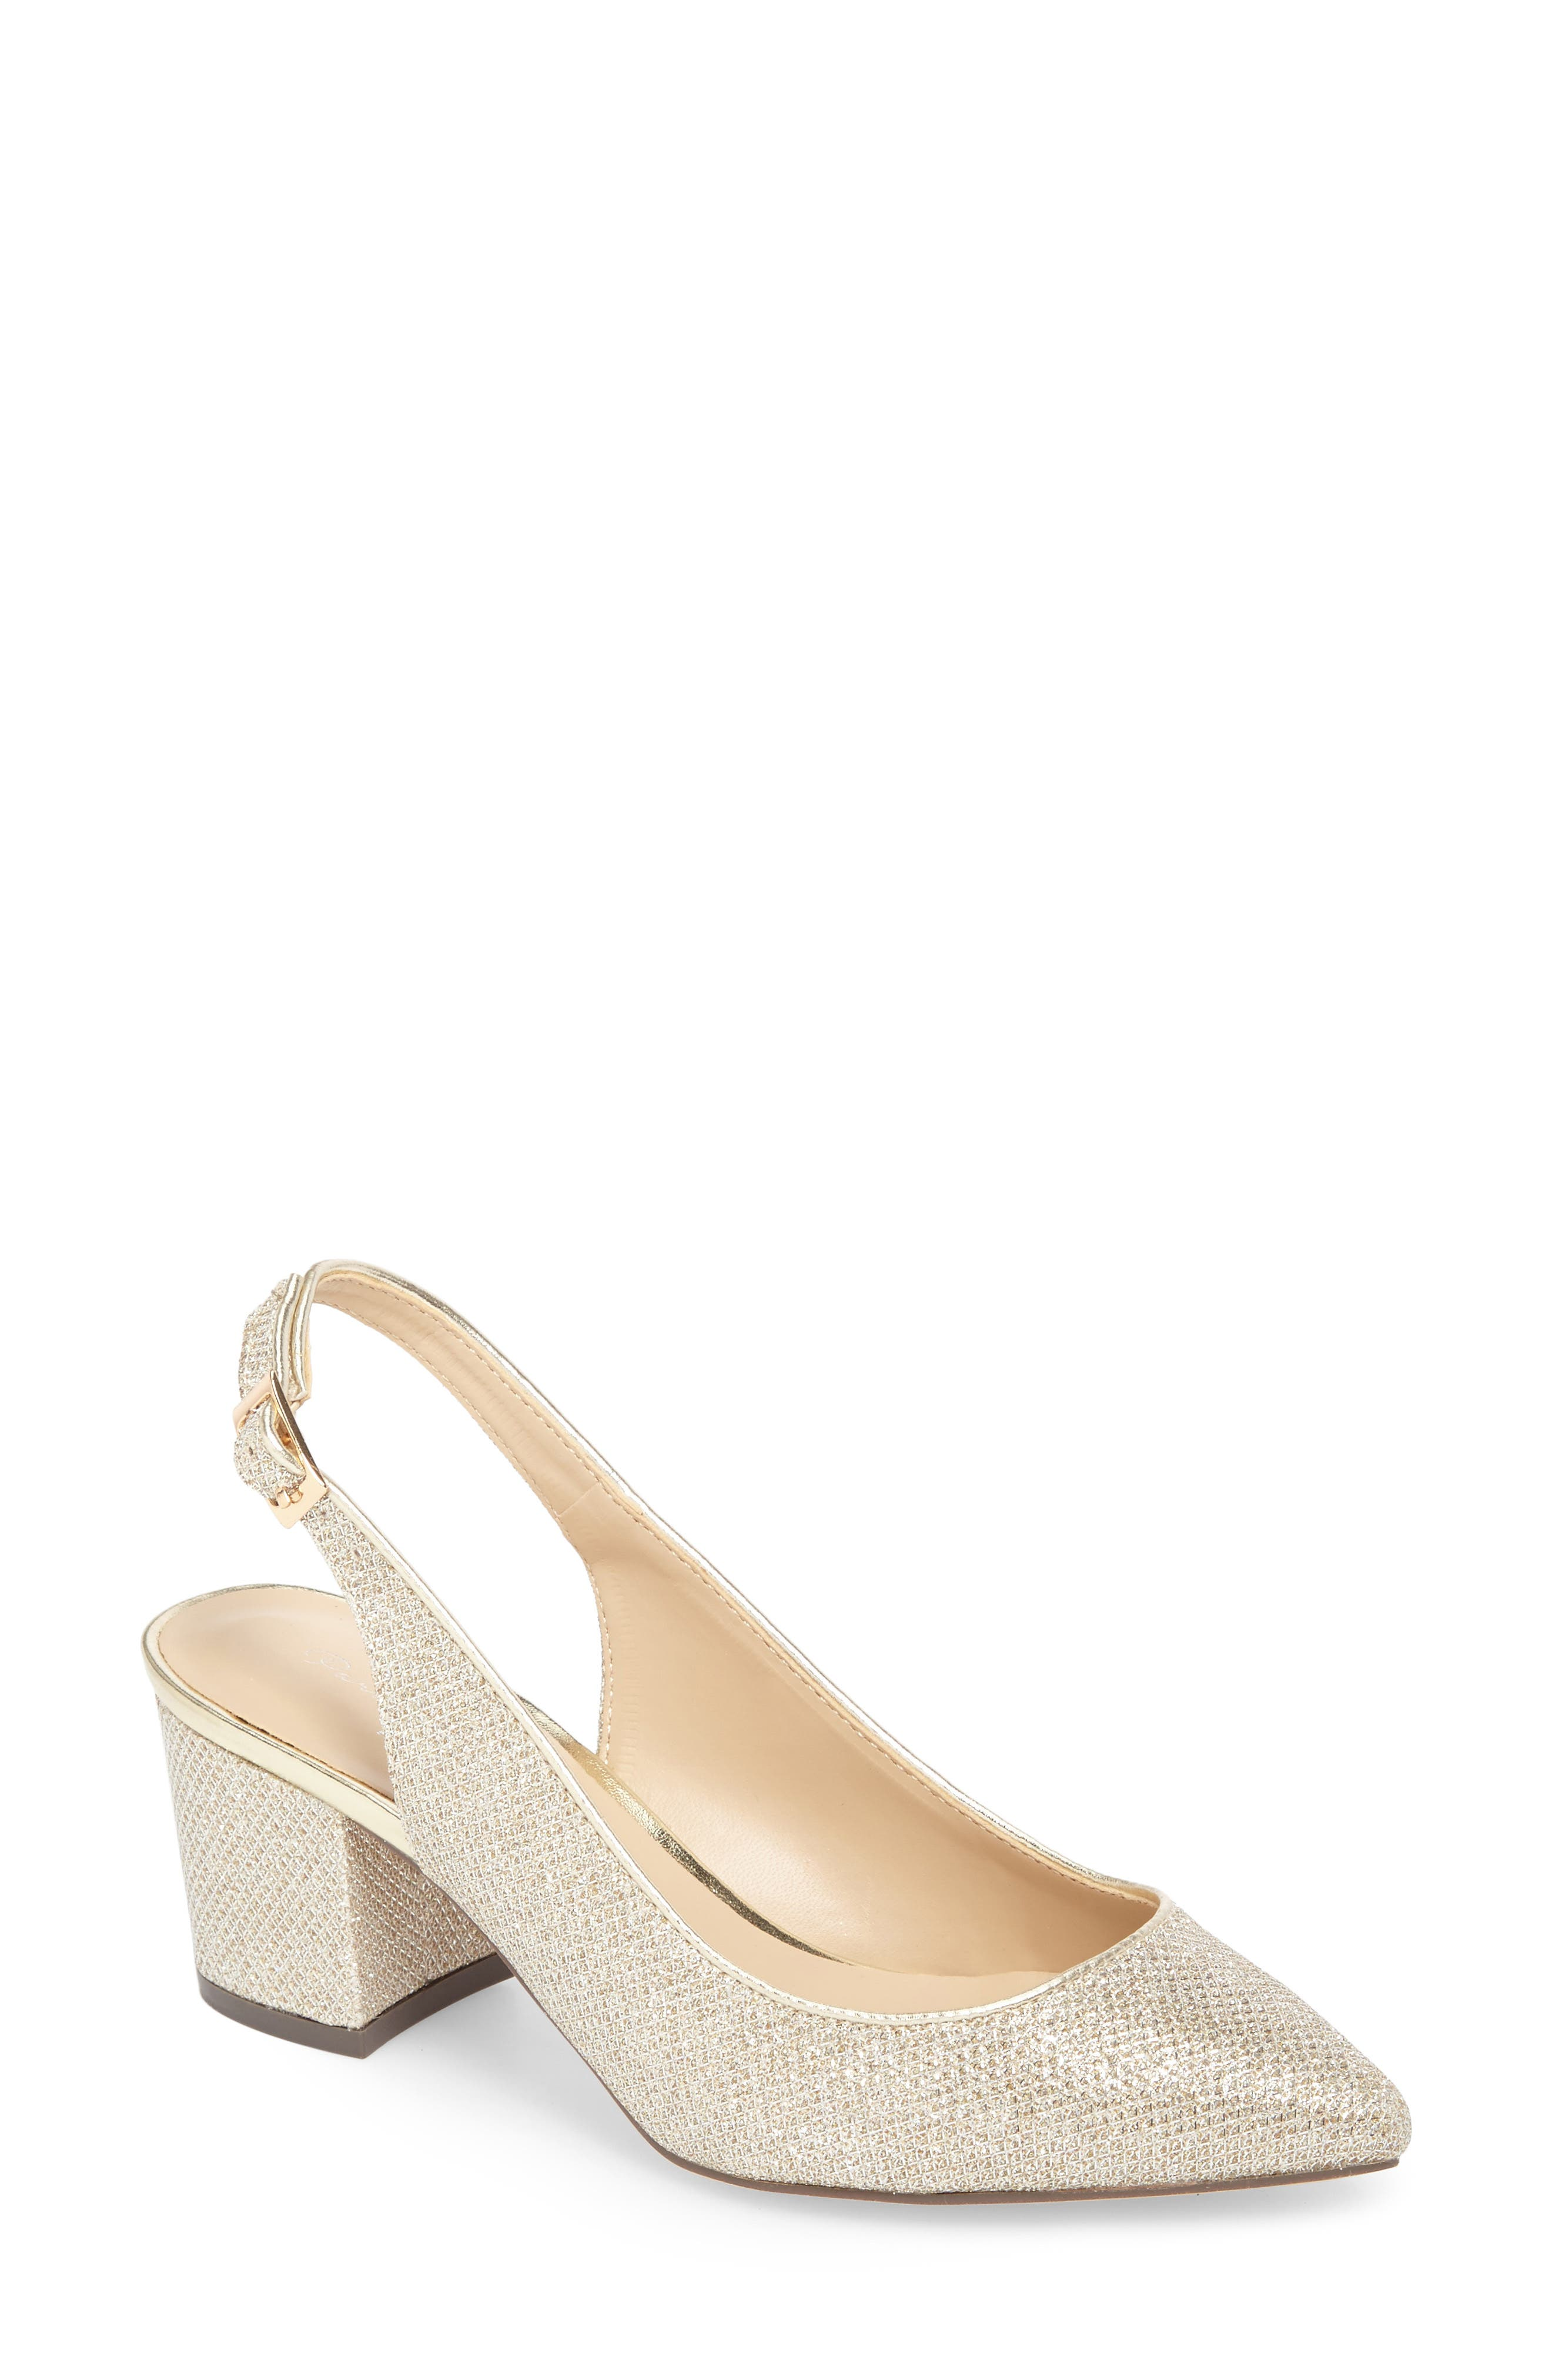 pink paradox london Aubree Slingback Pump (Women)